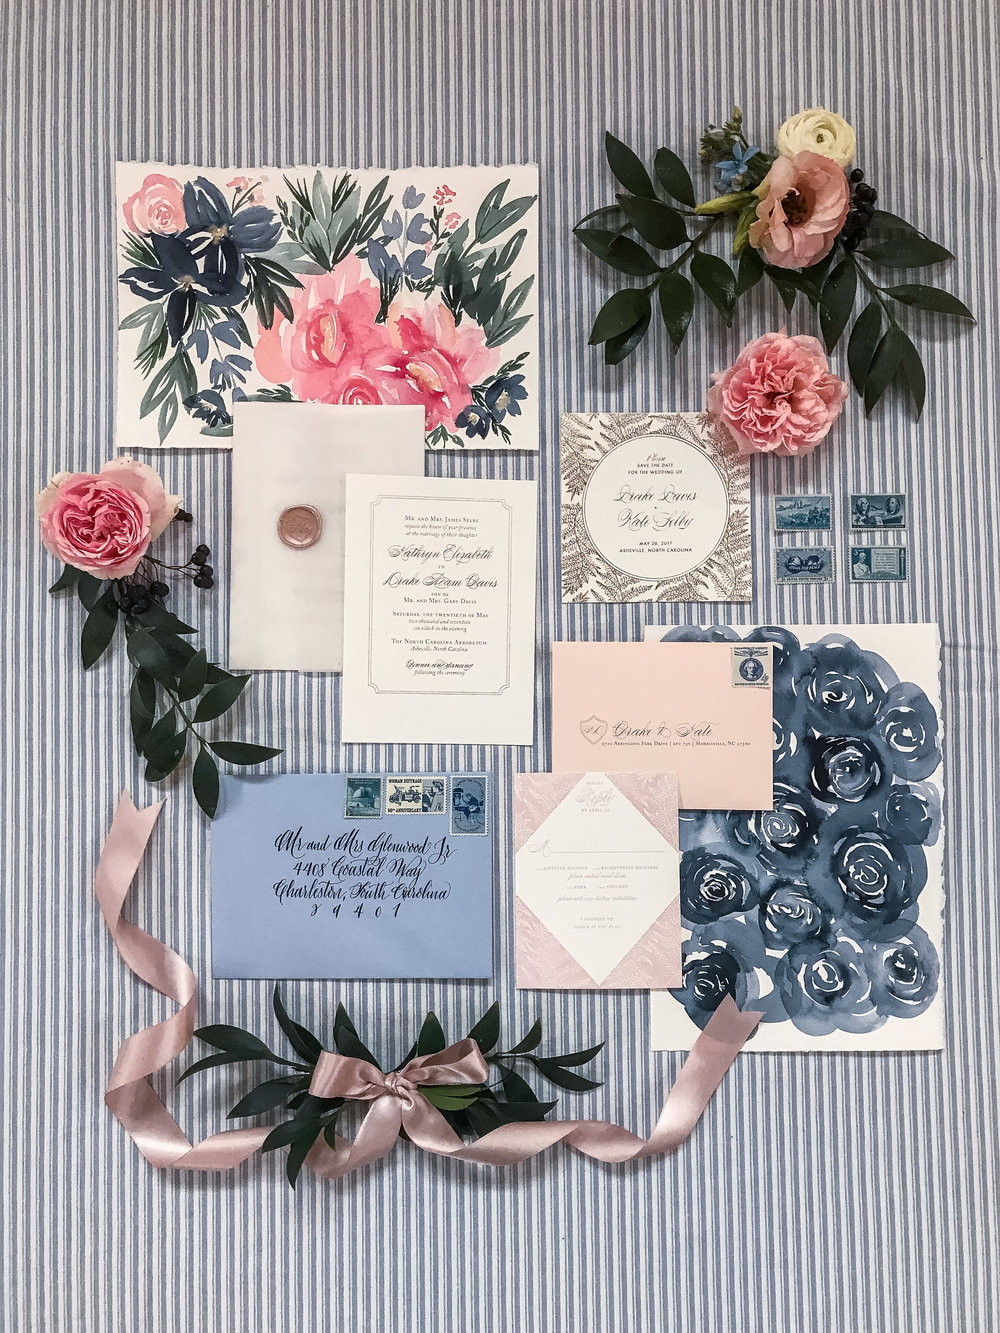 Southern Summer at Home Wedding Barn Chapel Hill NC invitation